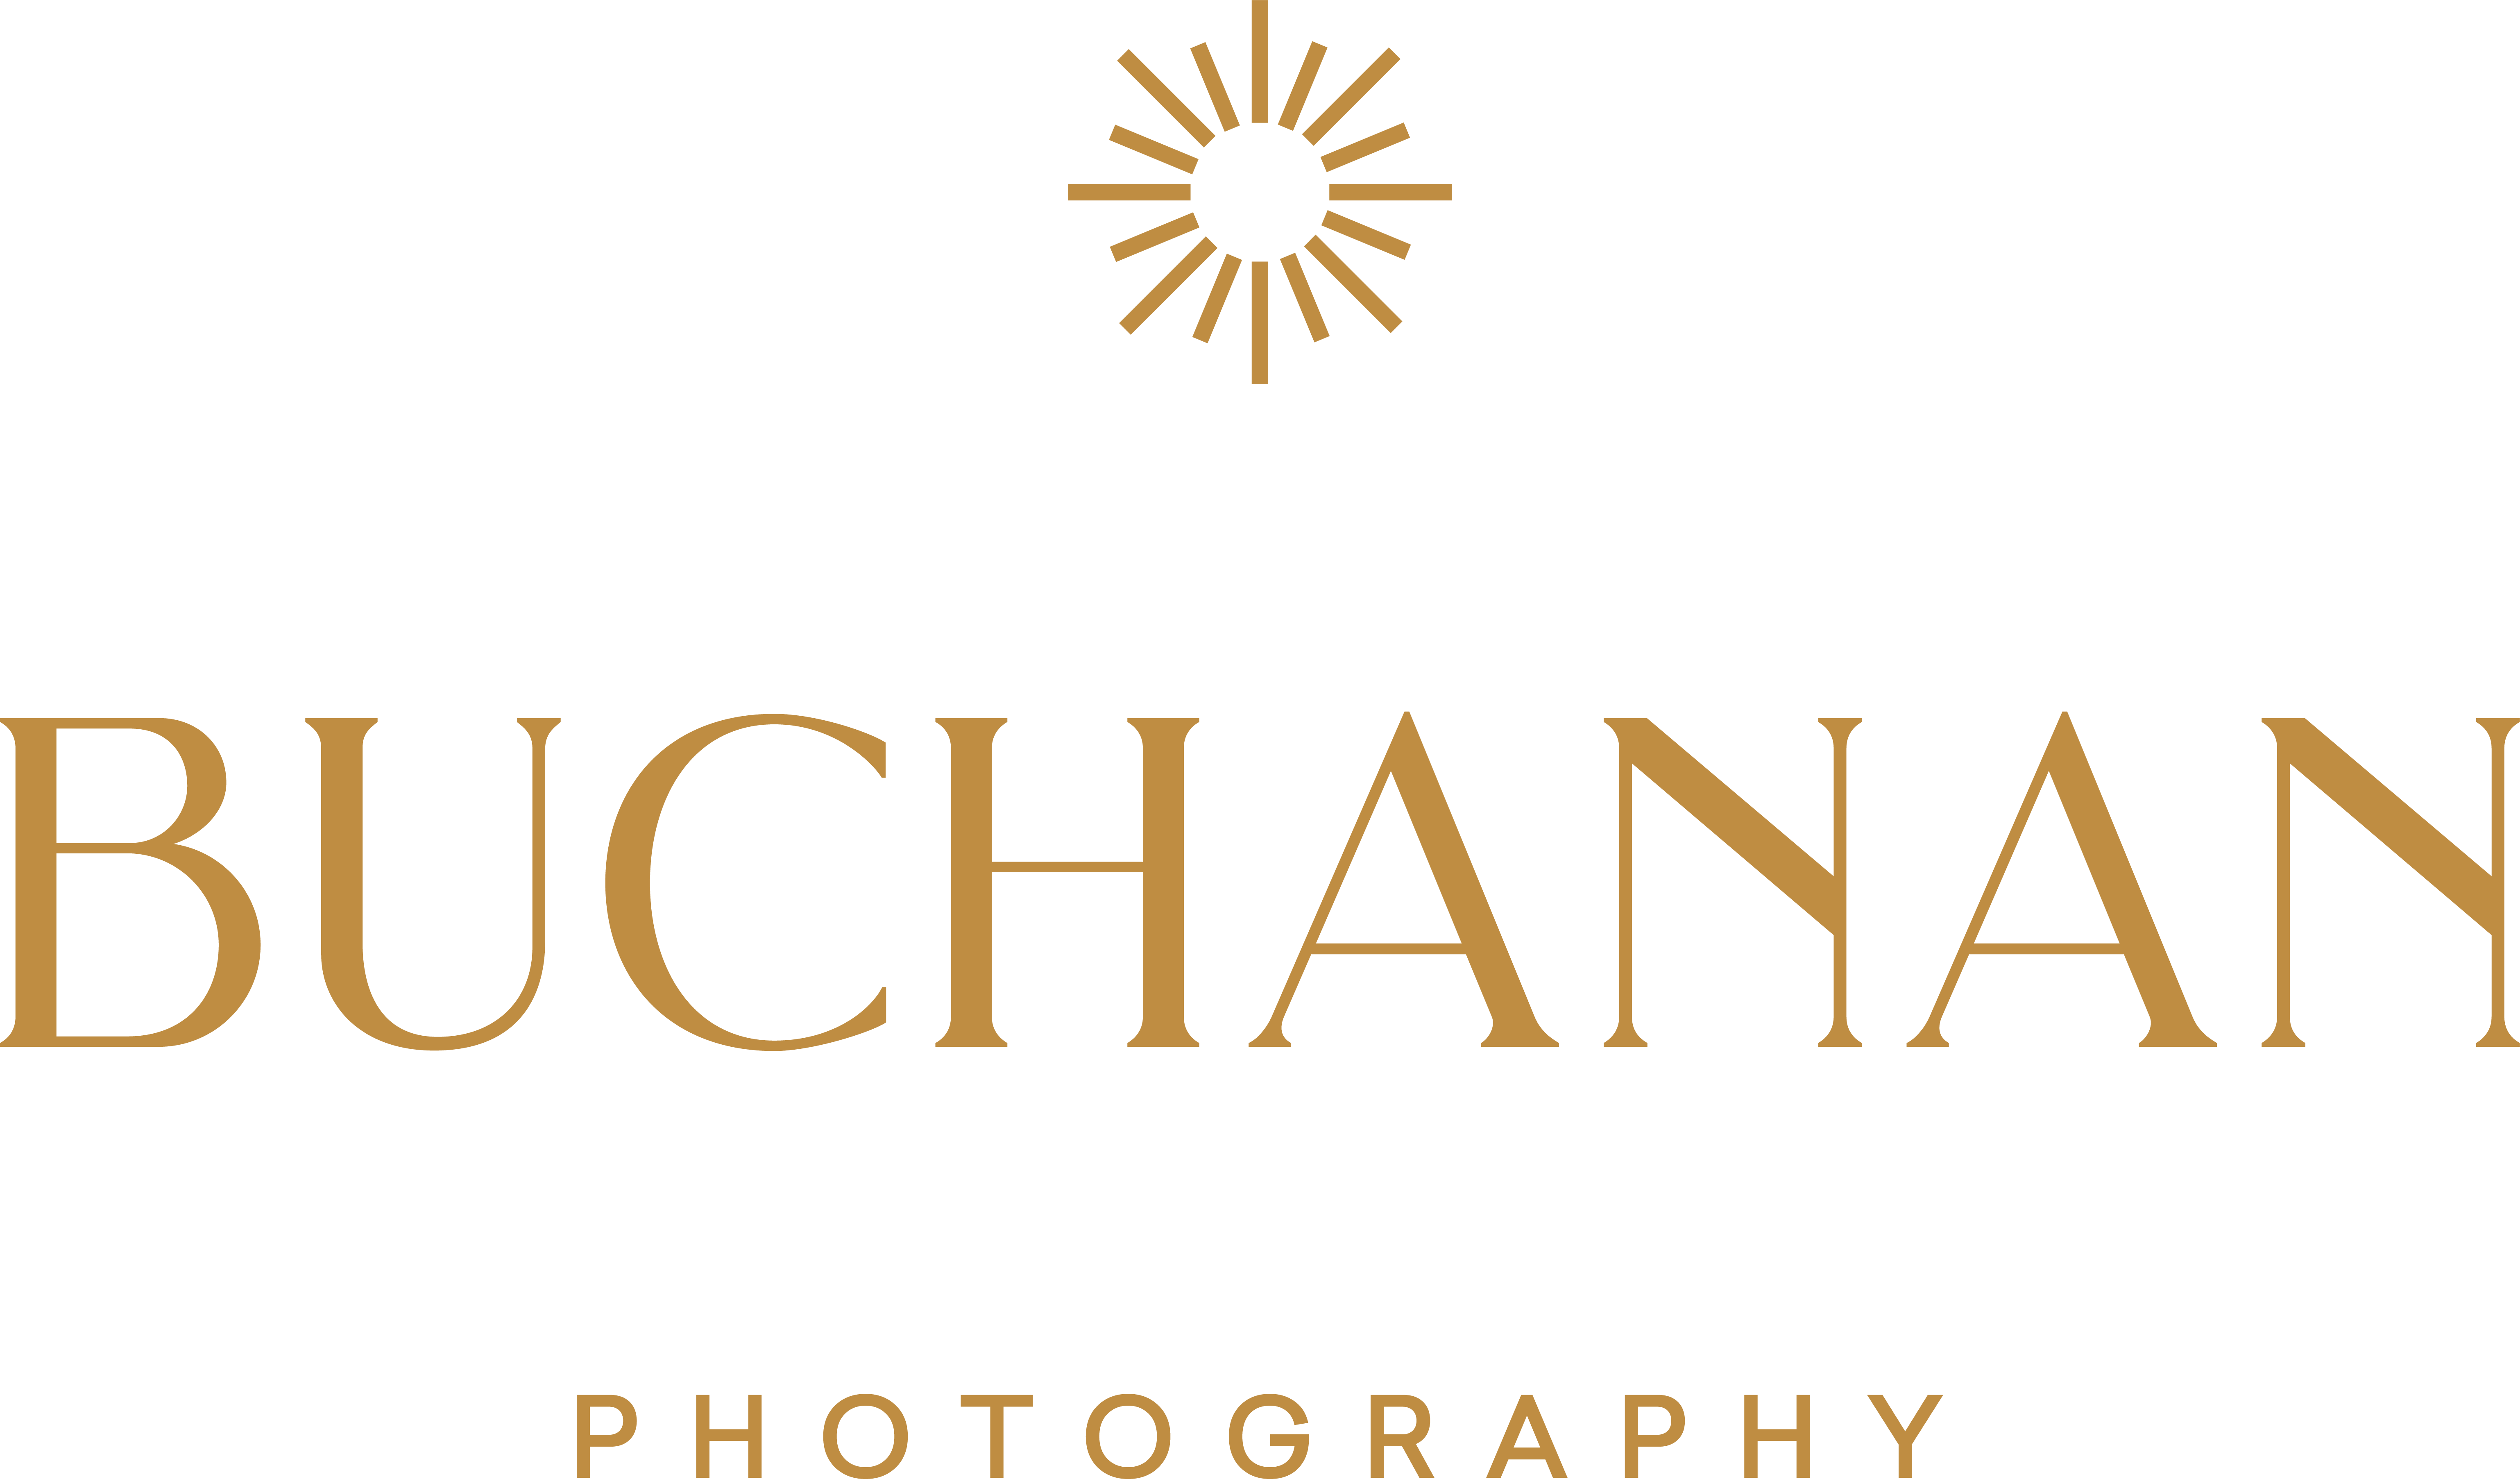 Buchanan Photography